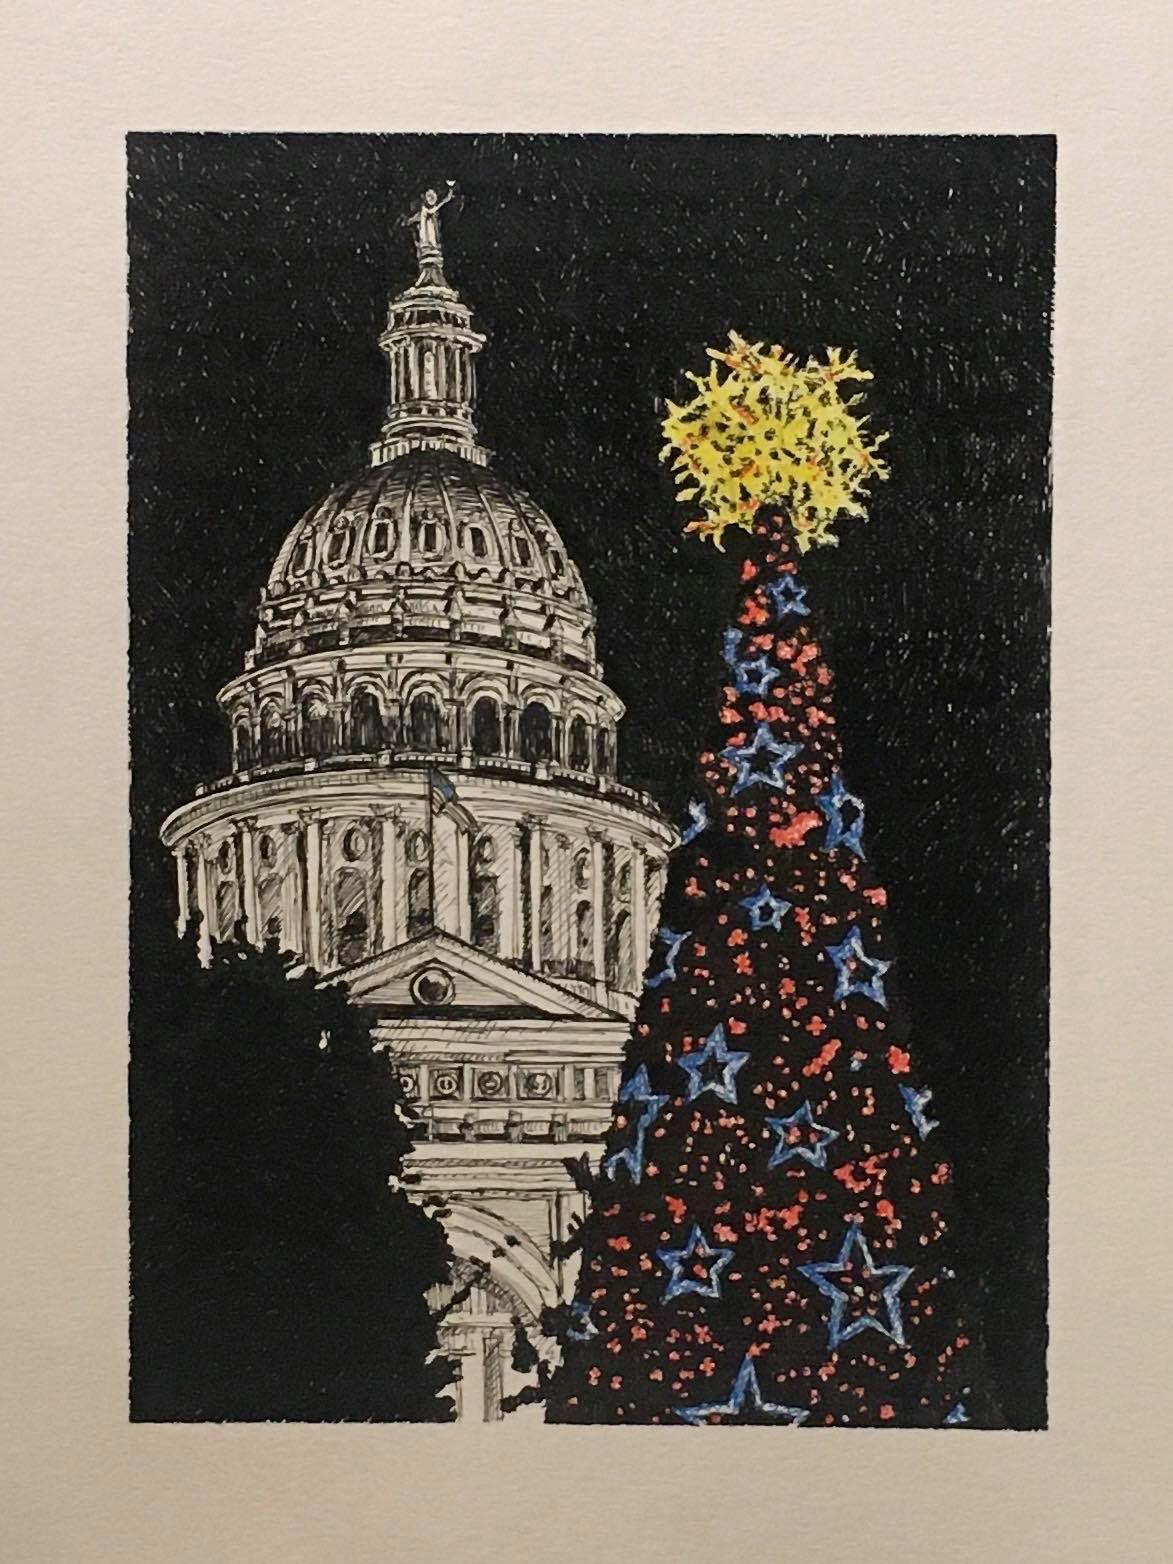 Texas Capitol Christmas Tree Drawing by Roben Taglienti - tag+art